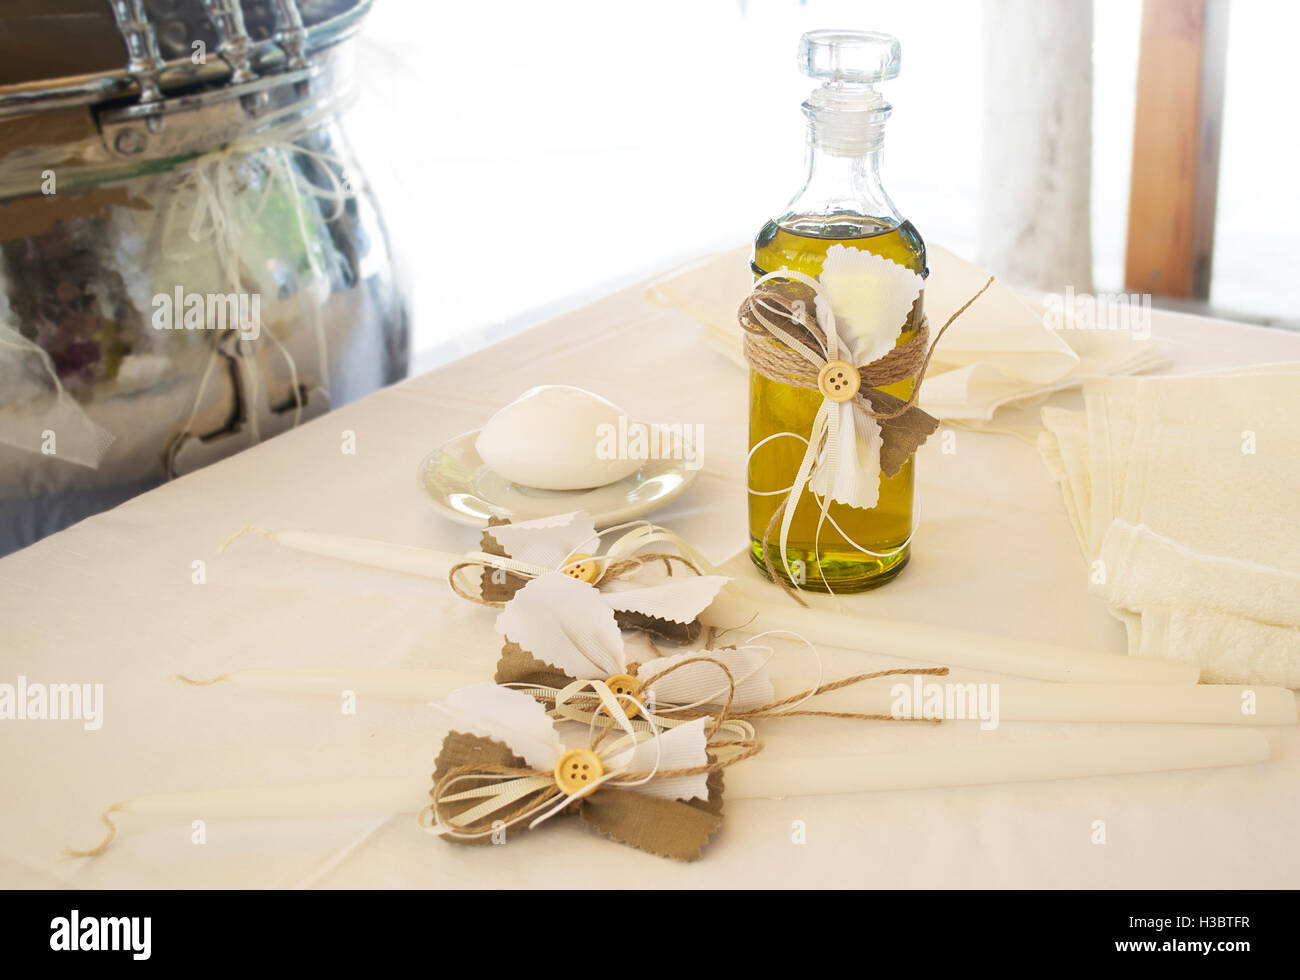 Orthodox Christening oil with candles and soap - Stock Image